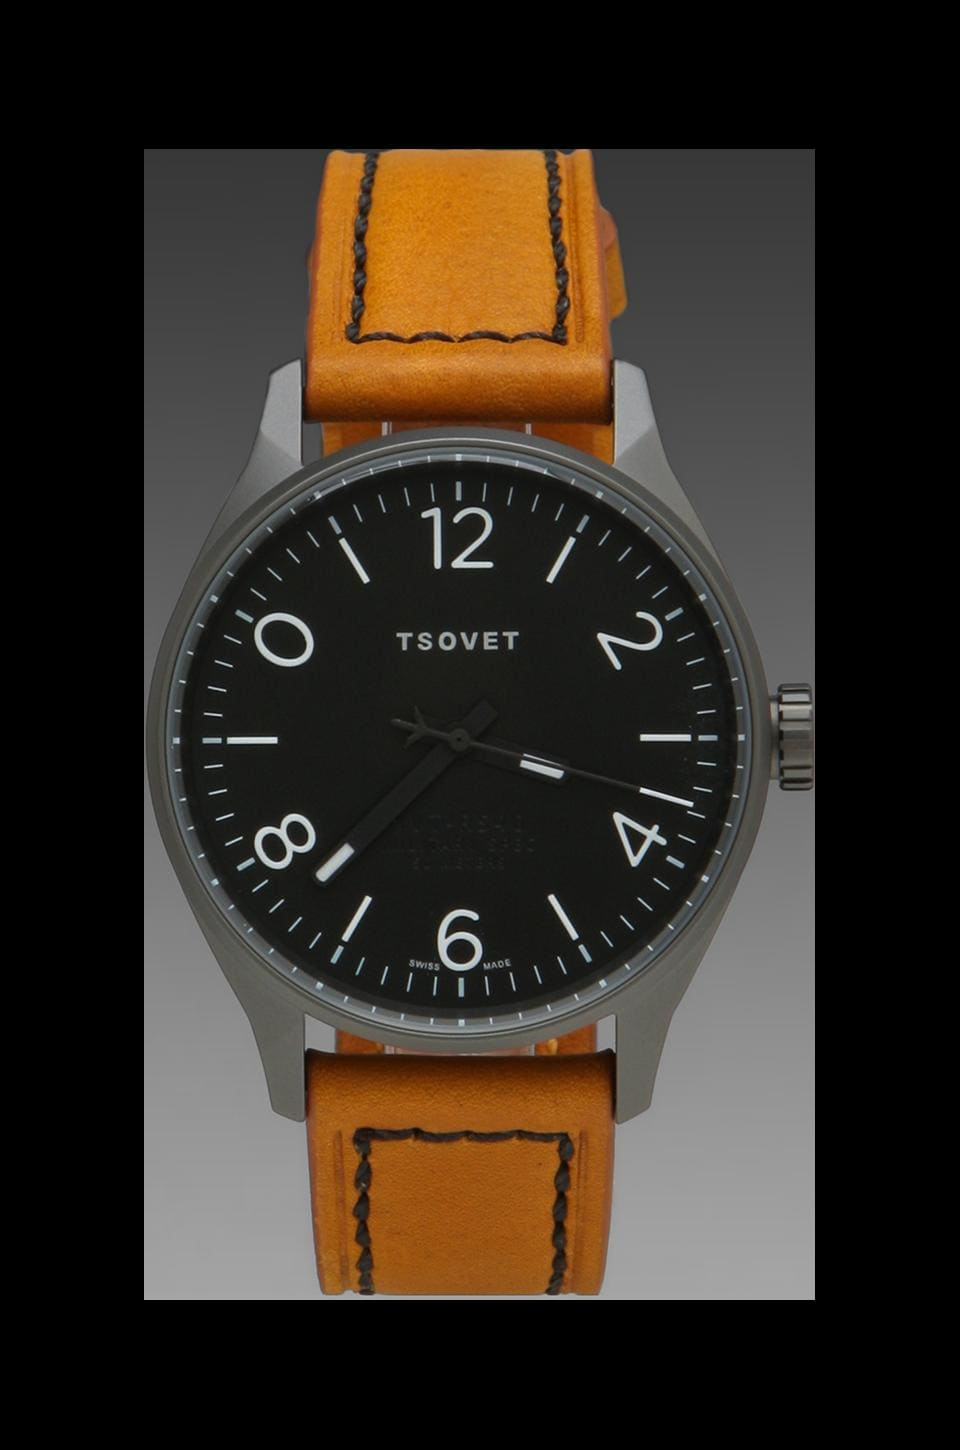 Tsovet SVT-RS40 in Tan/ Black